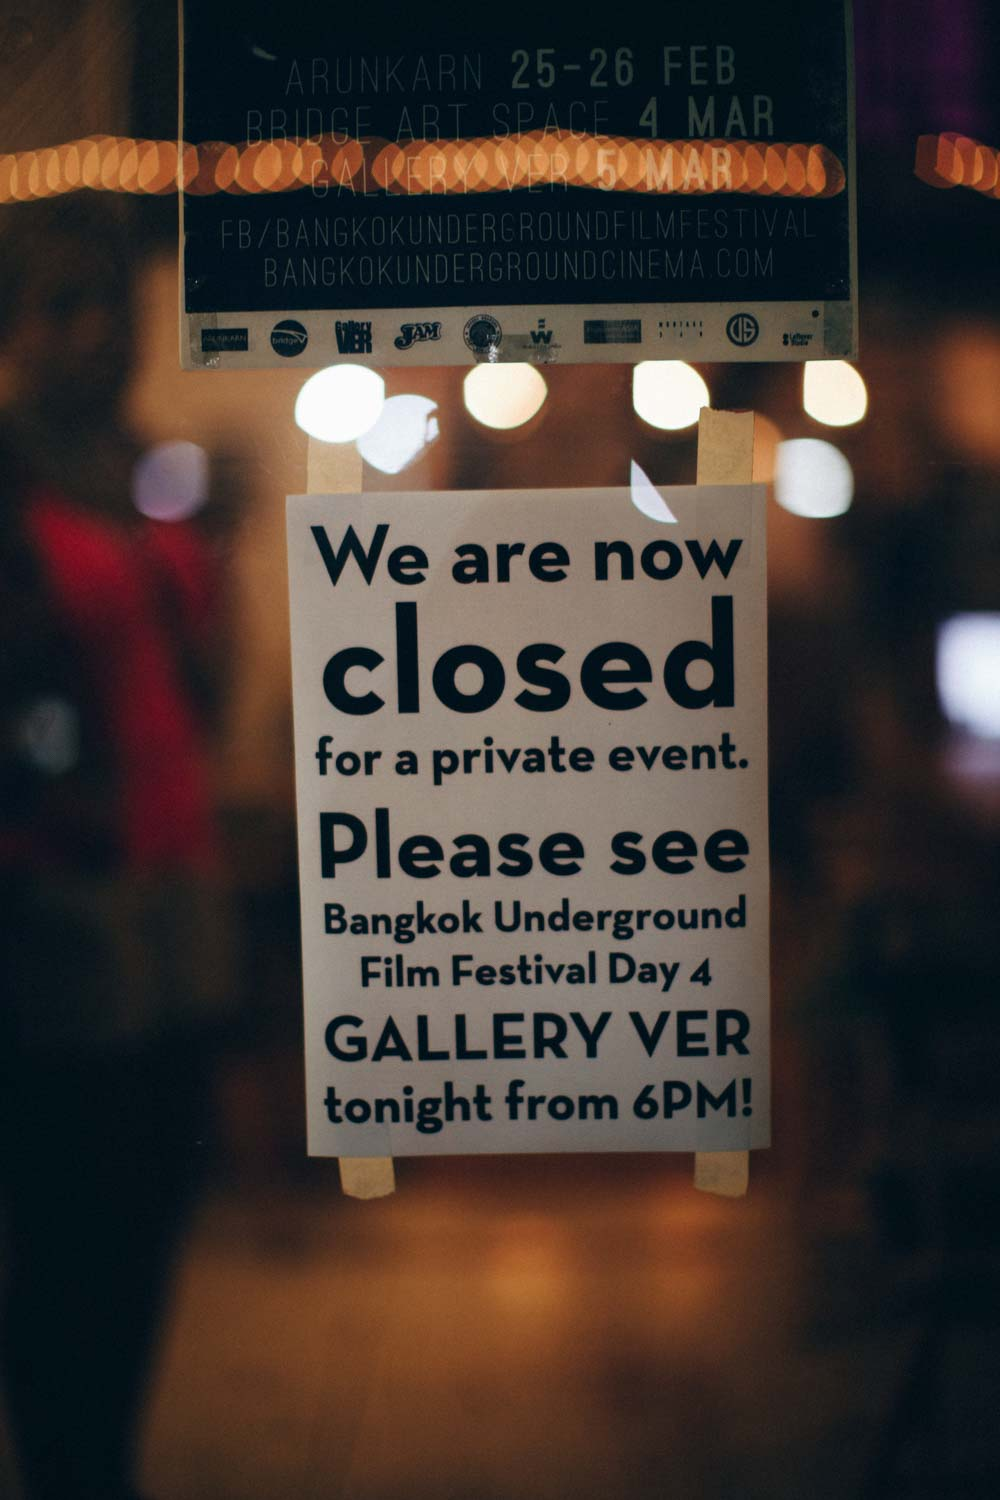 Private Event Sign at Bridge Art Gallery, Bangkok, Thailand